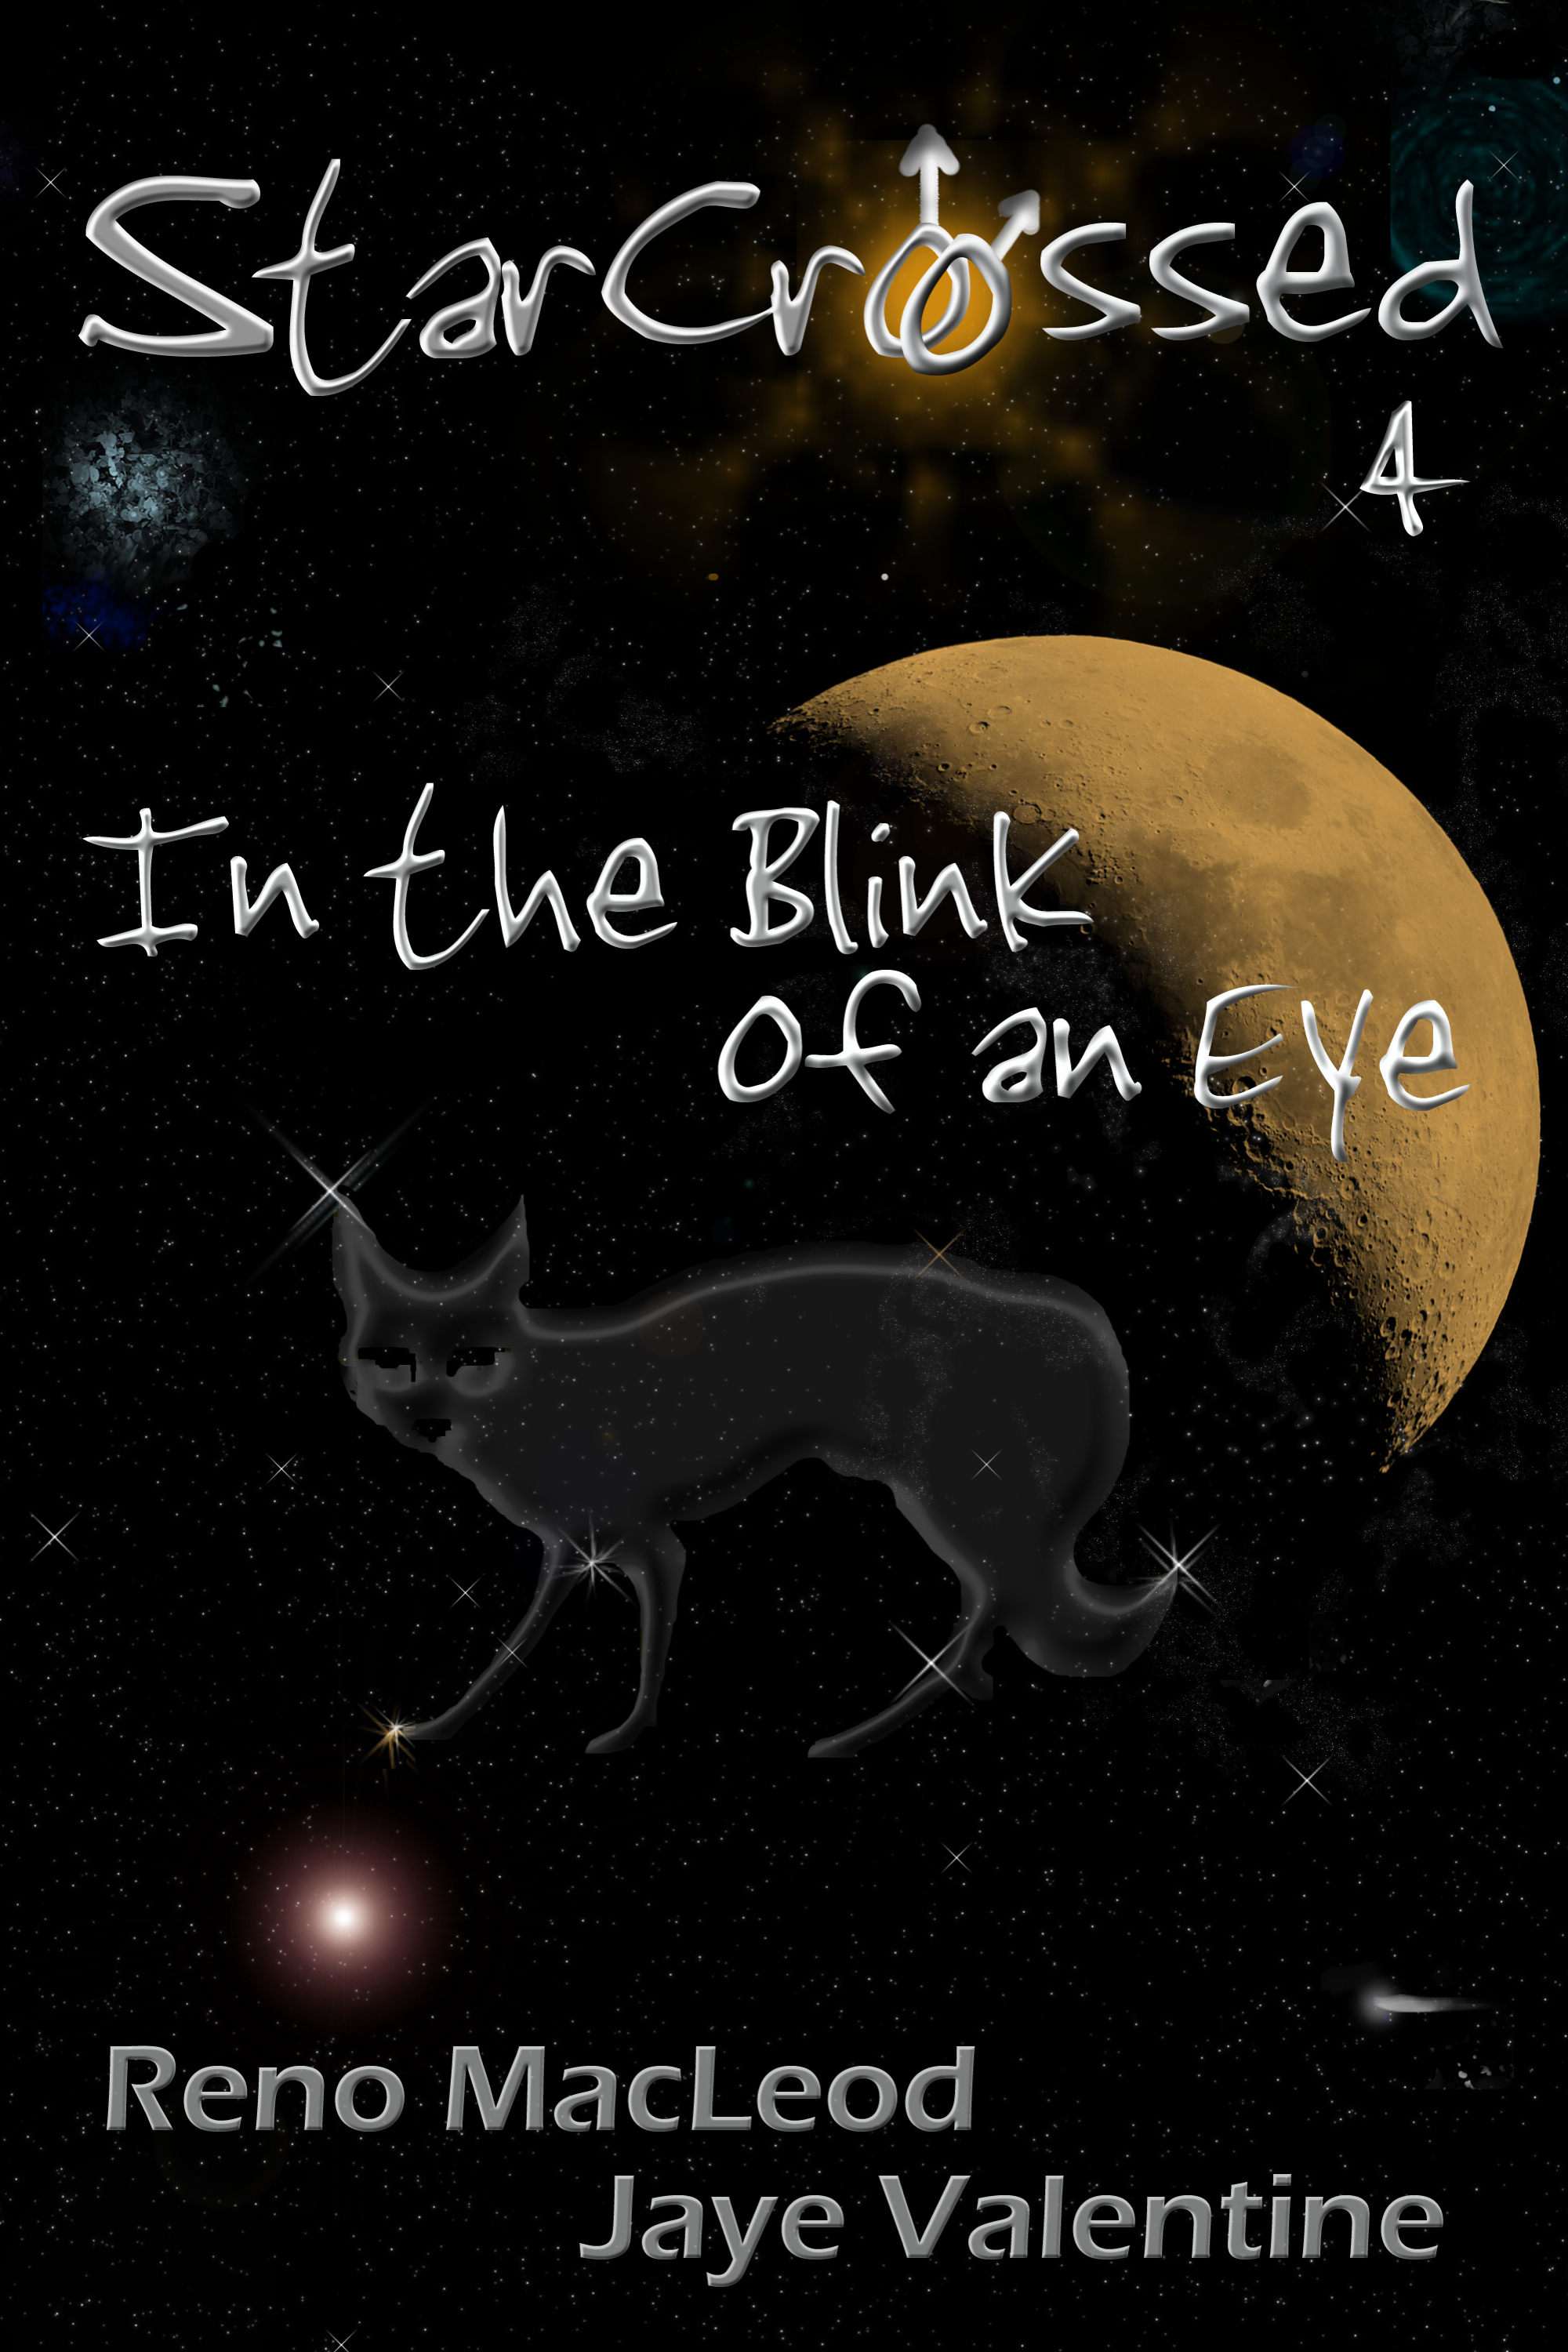 StarCrossed 4: In the Blink of an Eye